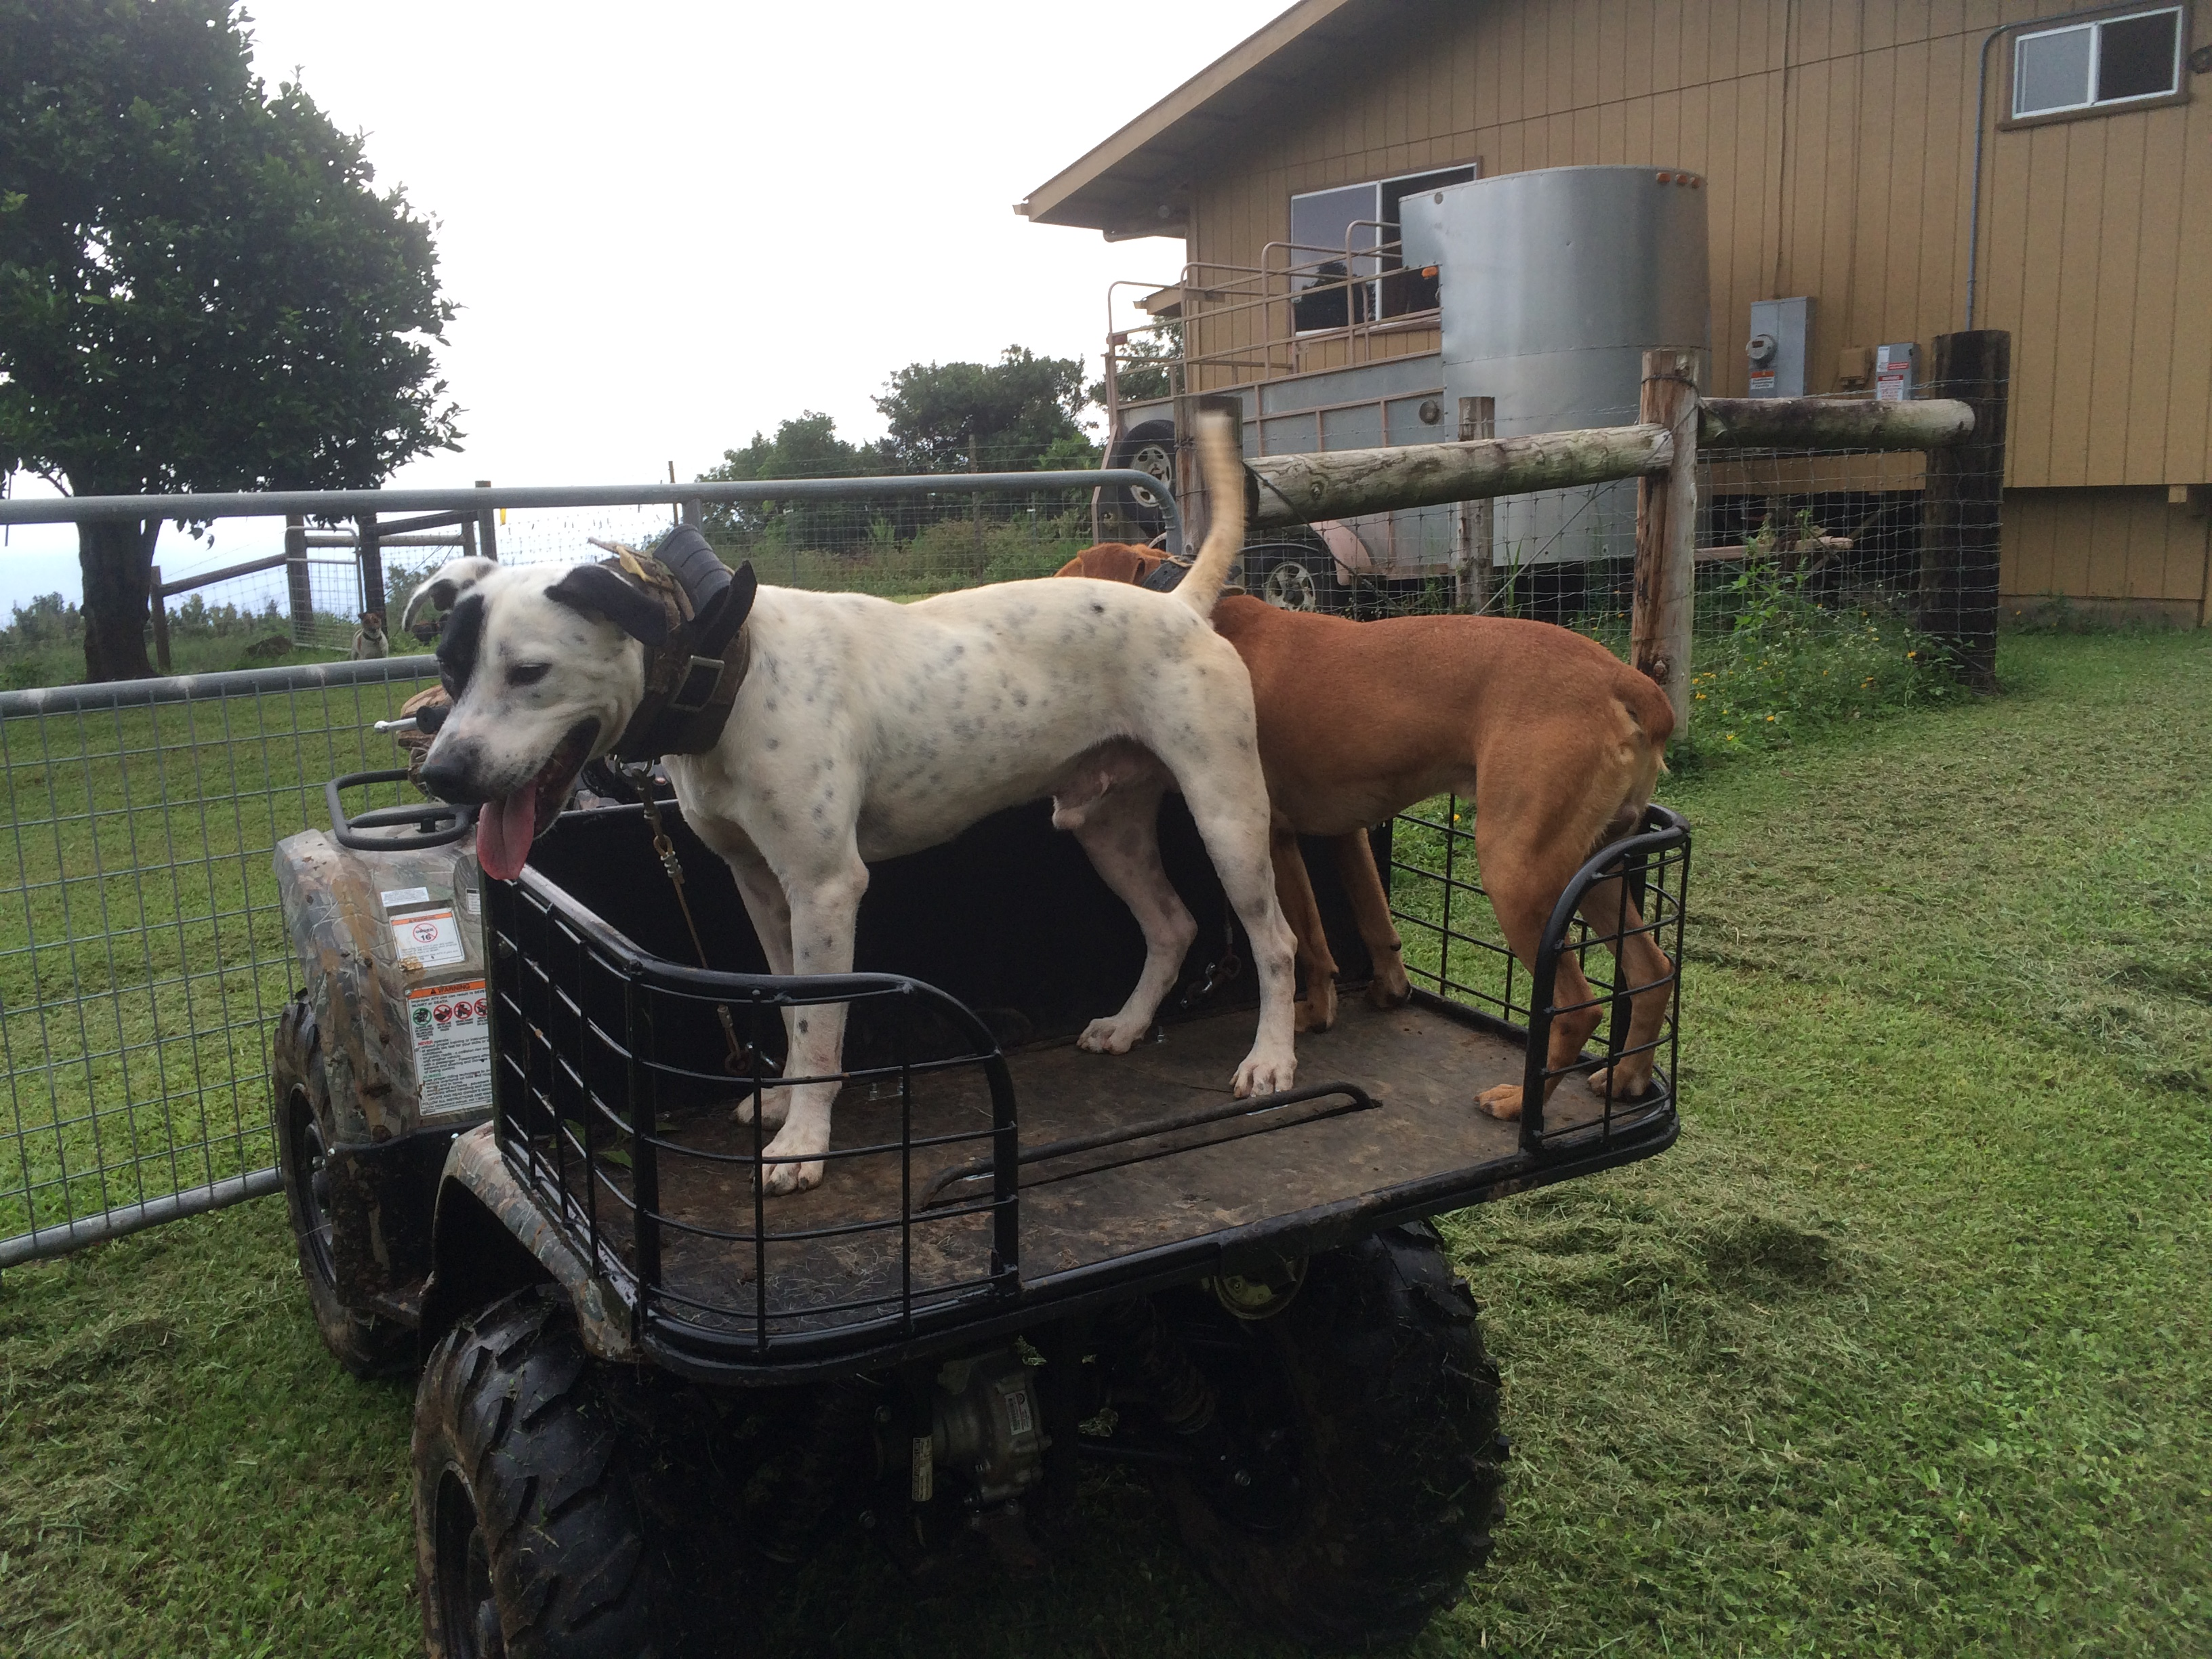 Yamaha Grizzly 450 >> Tried out the new dog rack - Yamaha Grizzly ATV Forum